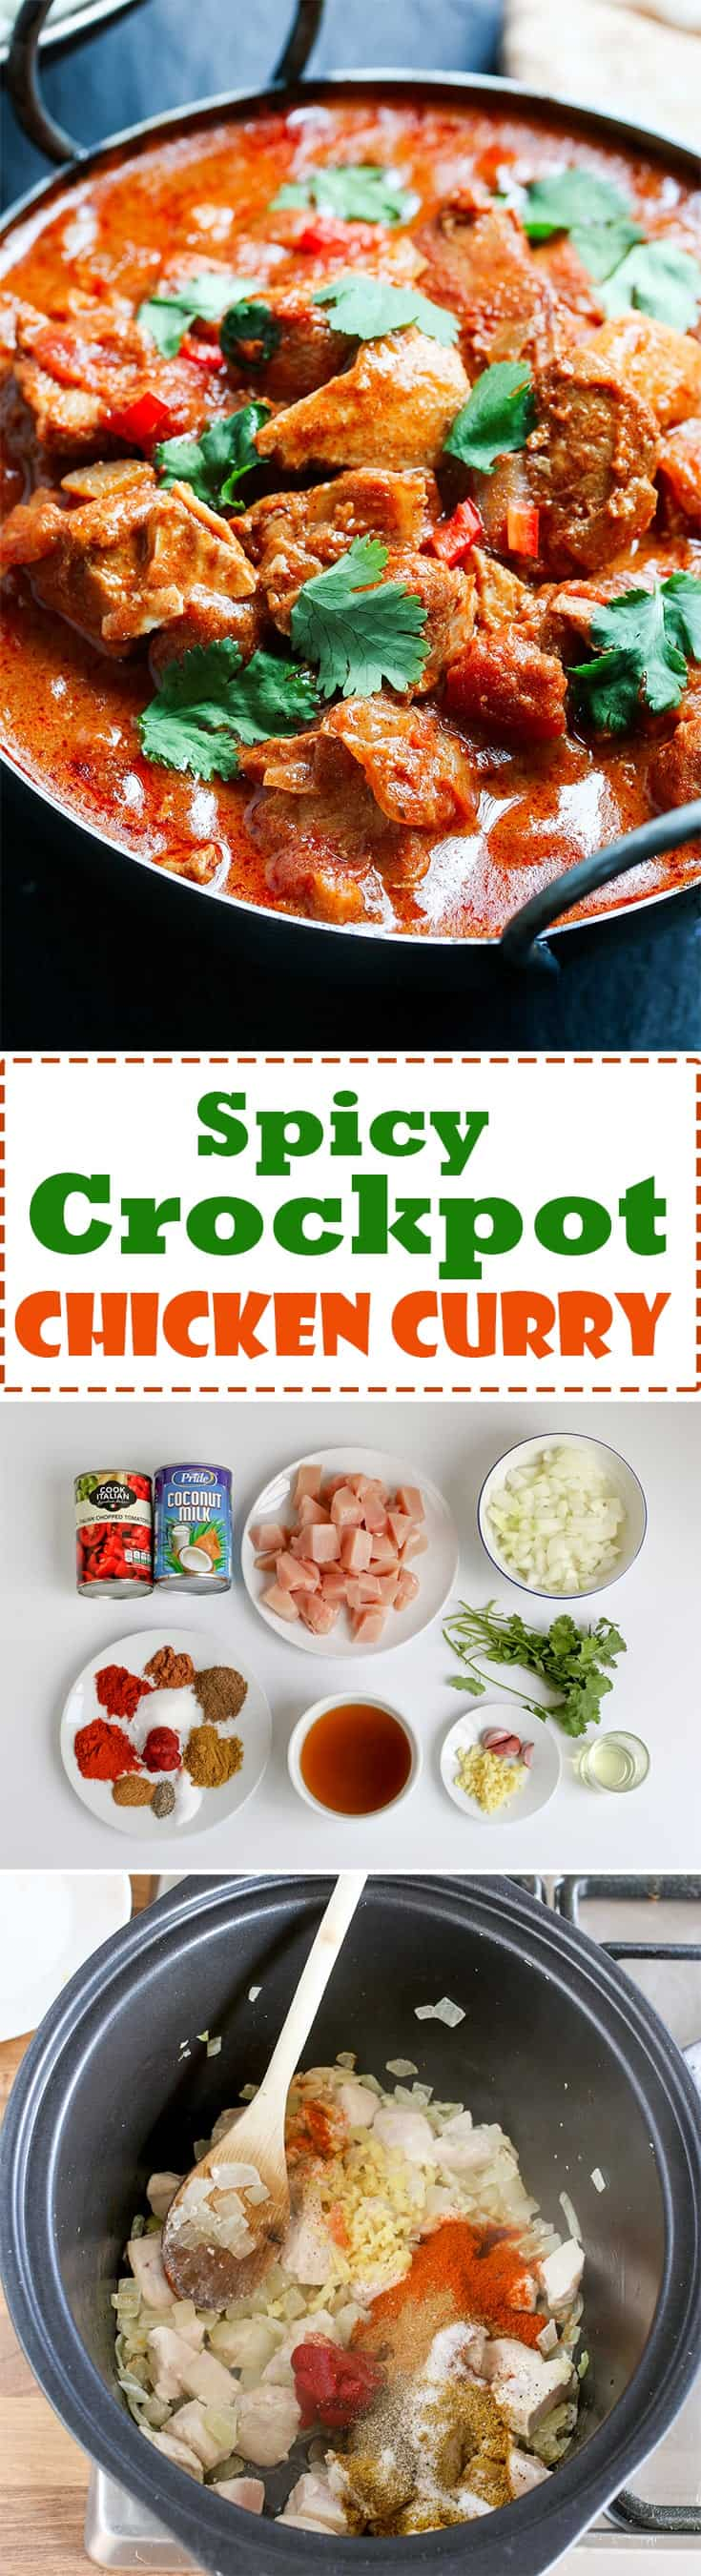 SLOW-COOKED SPICY CHICKEN CURRY. A simple made-from-scratch curry, slow cooked to intensify the heat and flavour. #Recipe #Chicken #Curry #SlowCooker #Crockpot #spicycurry #chickencurry